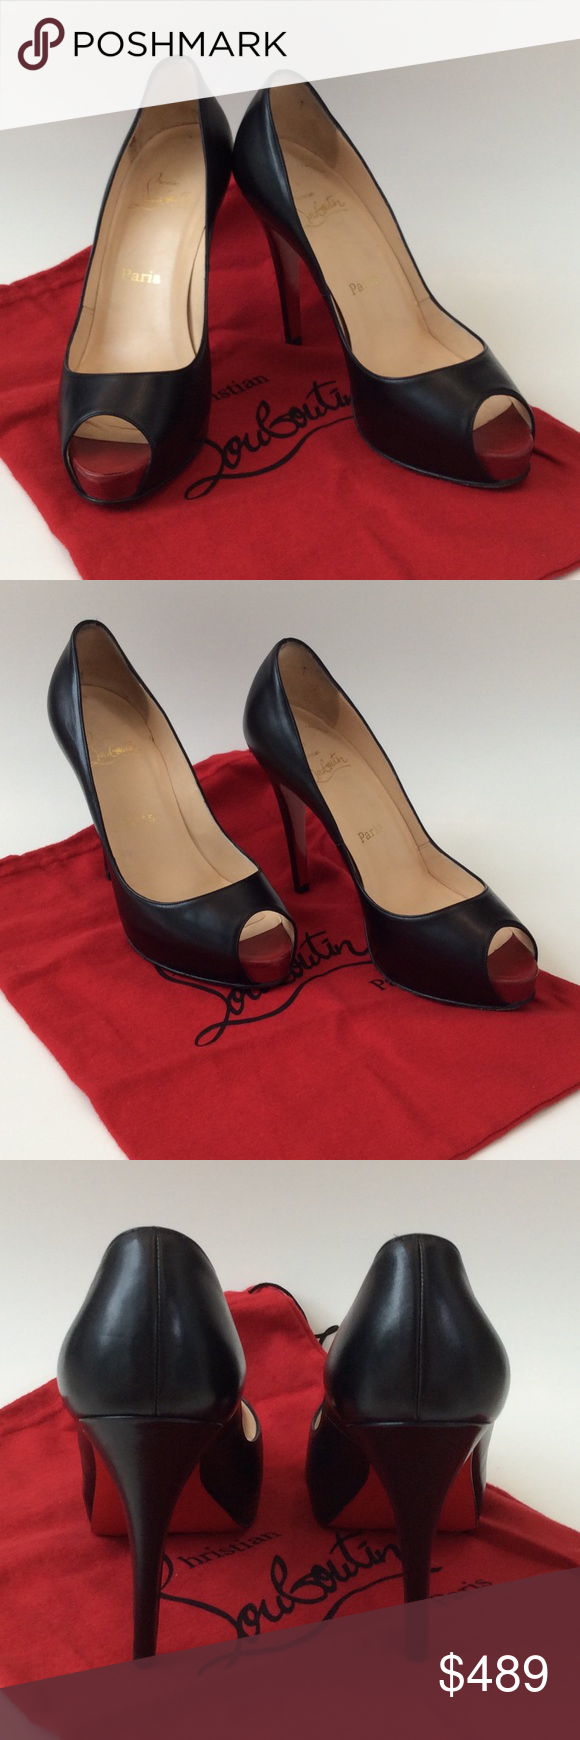 "LOUBOUTIN BLACK LEATHER PEEP TOE PUMPPS SIZE 7.5 Gorgeous Christian Louboutin Very Prive peep toe stiletto heels with unmistakable signature red at the toe. Excellent condition! Size 7.5 but runs small, so 7 would be perfect. 4.5"" heel height with a 3/4"" platform for added comfort. This Very Prive is super popular and continue to go up in price. Dust bags included and extra heel tips. Price is firm due to the popularity of these shoes. Christian Louboutin Shoes Heels"